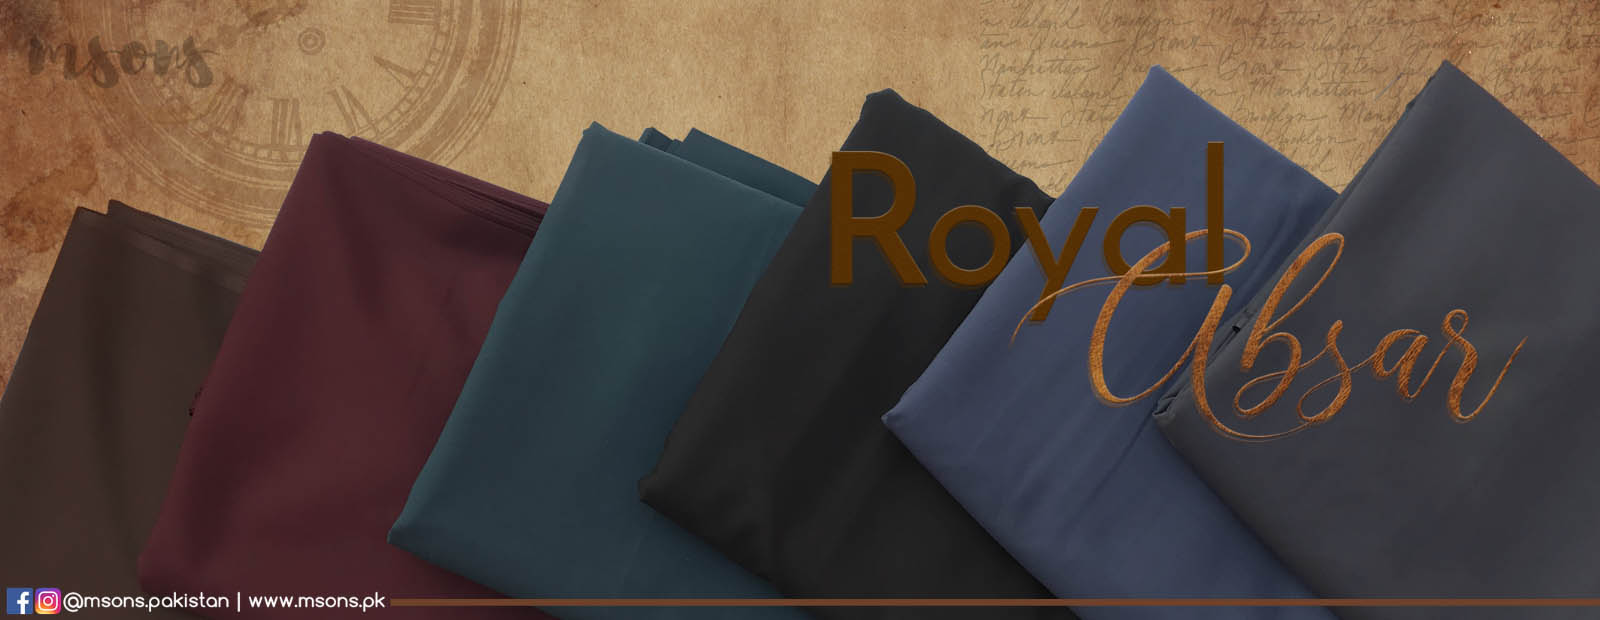 Royal Absar website Banner